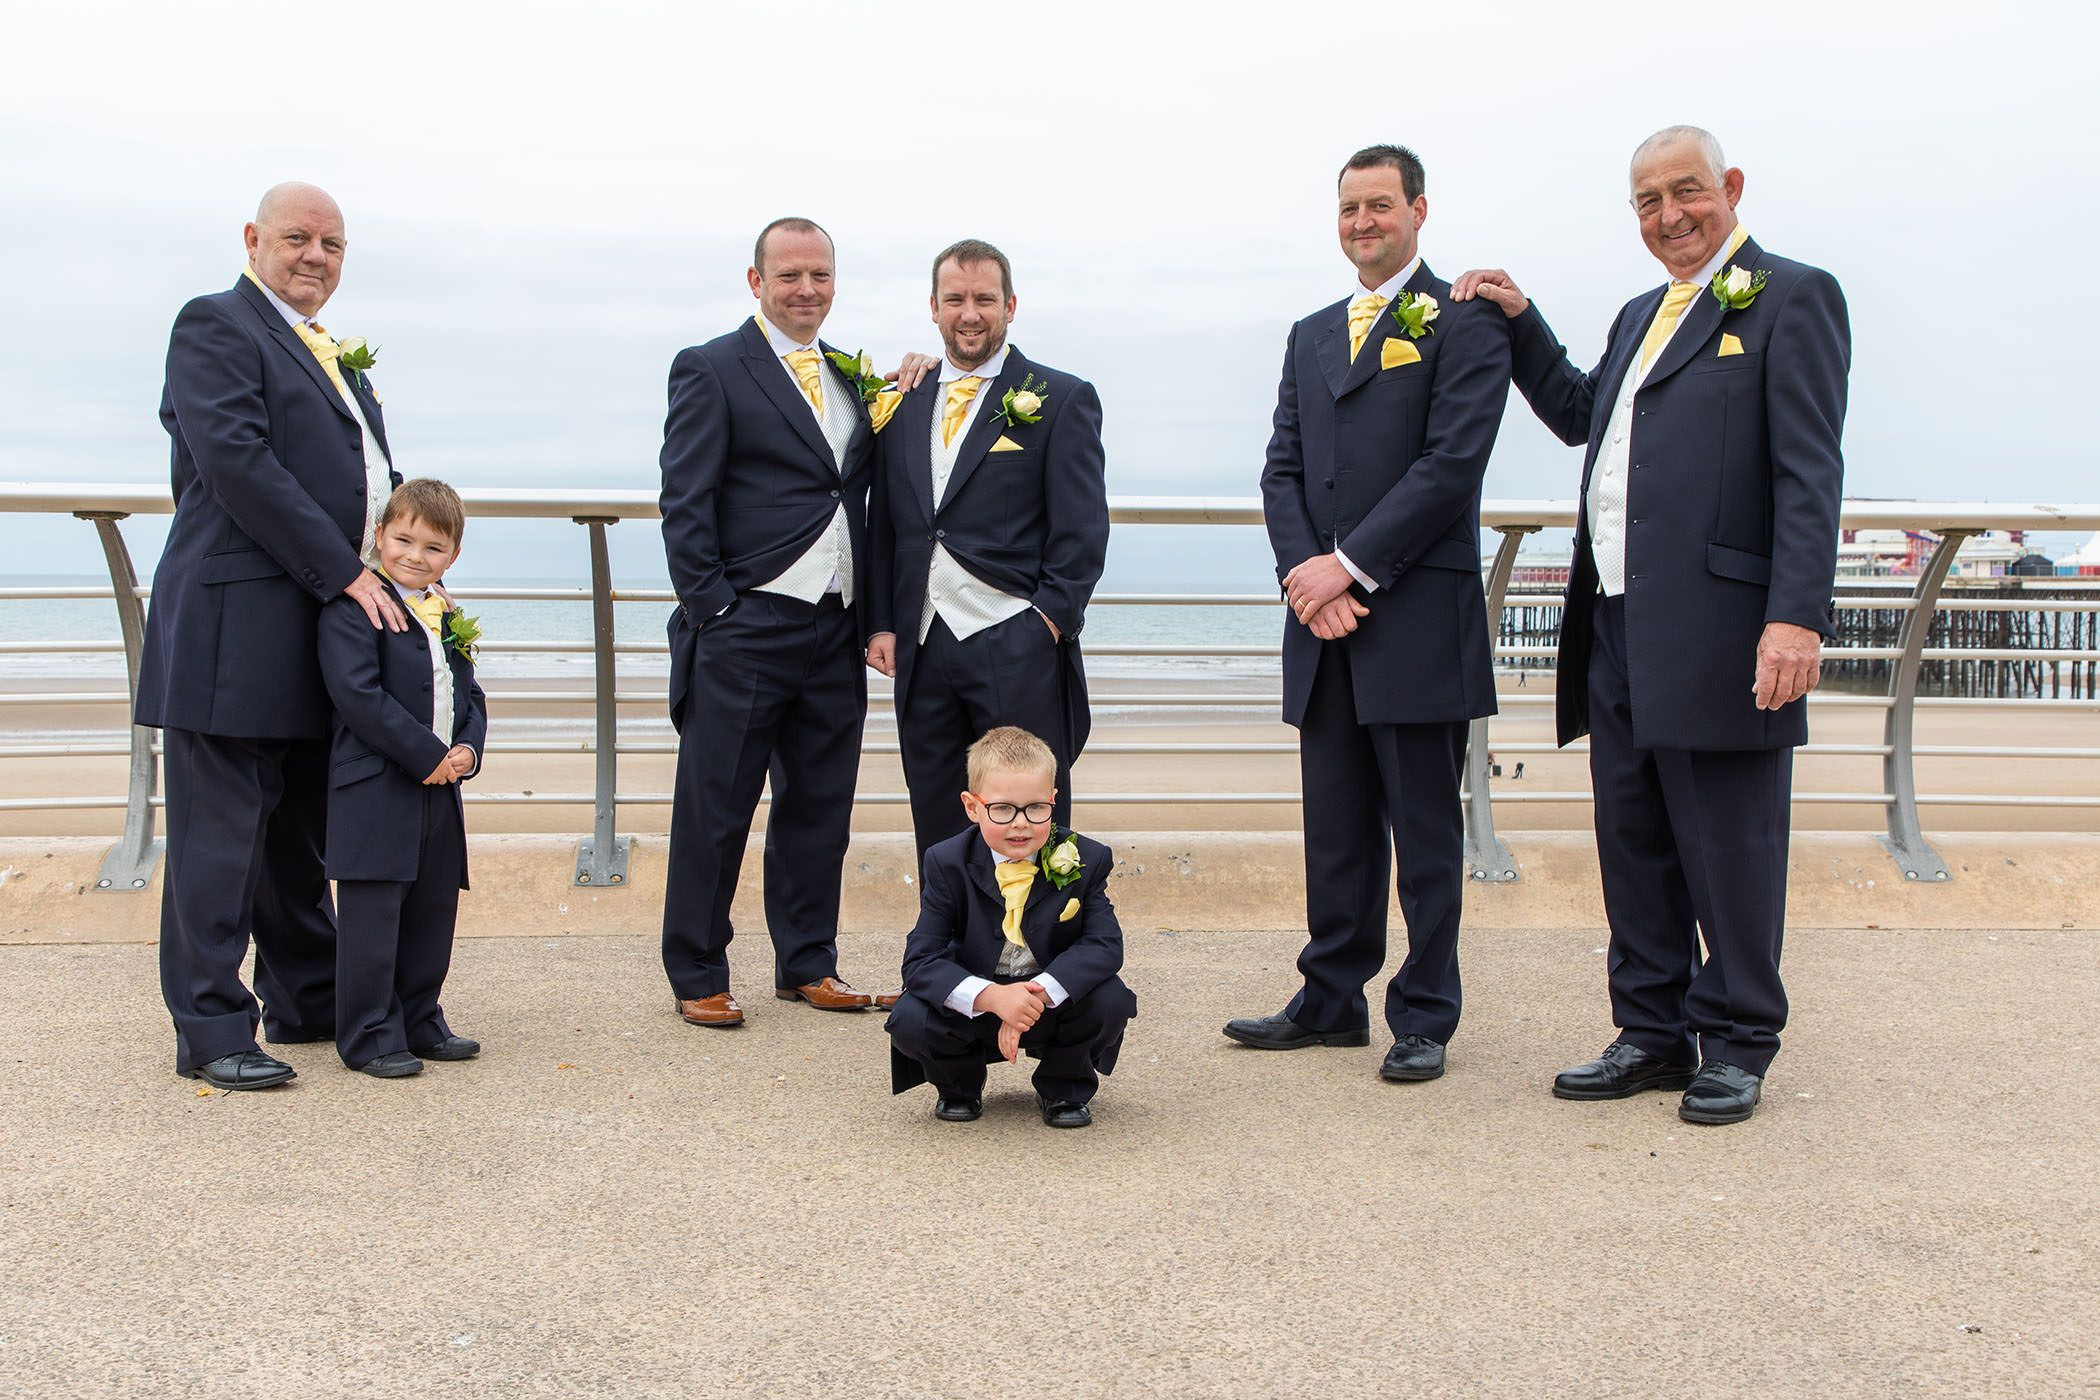 the men with the groom